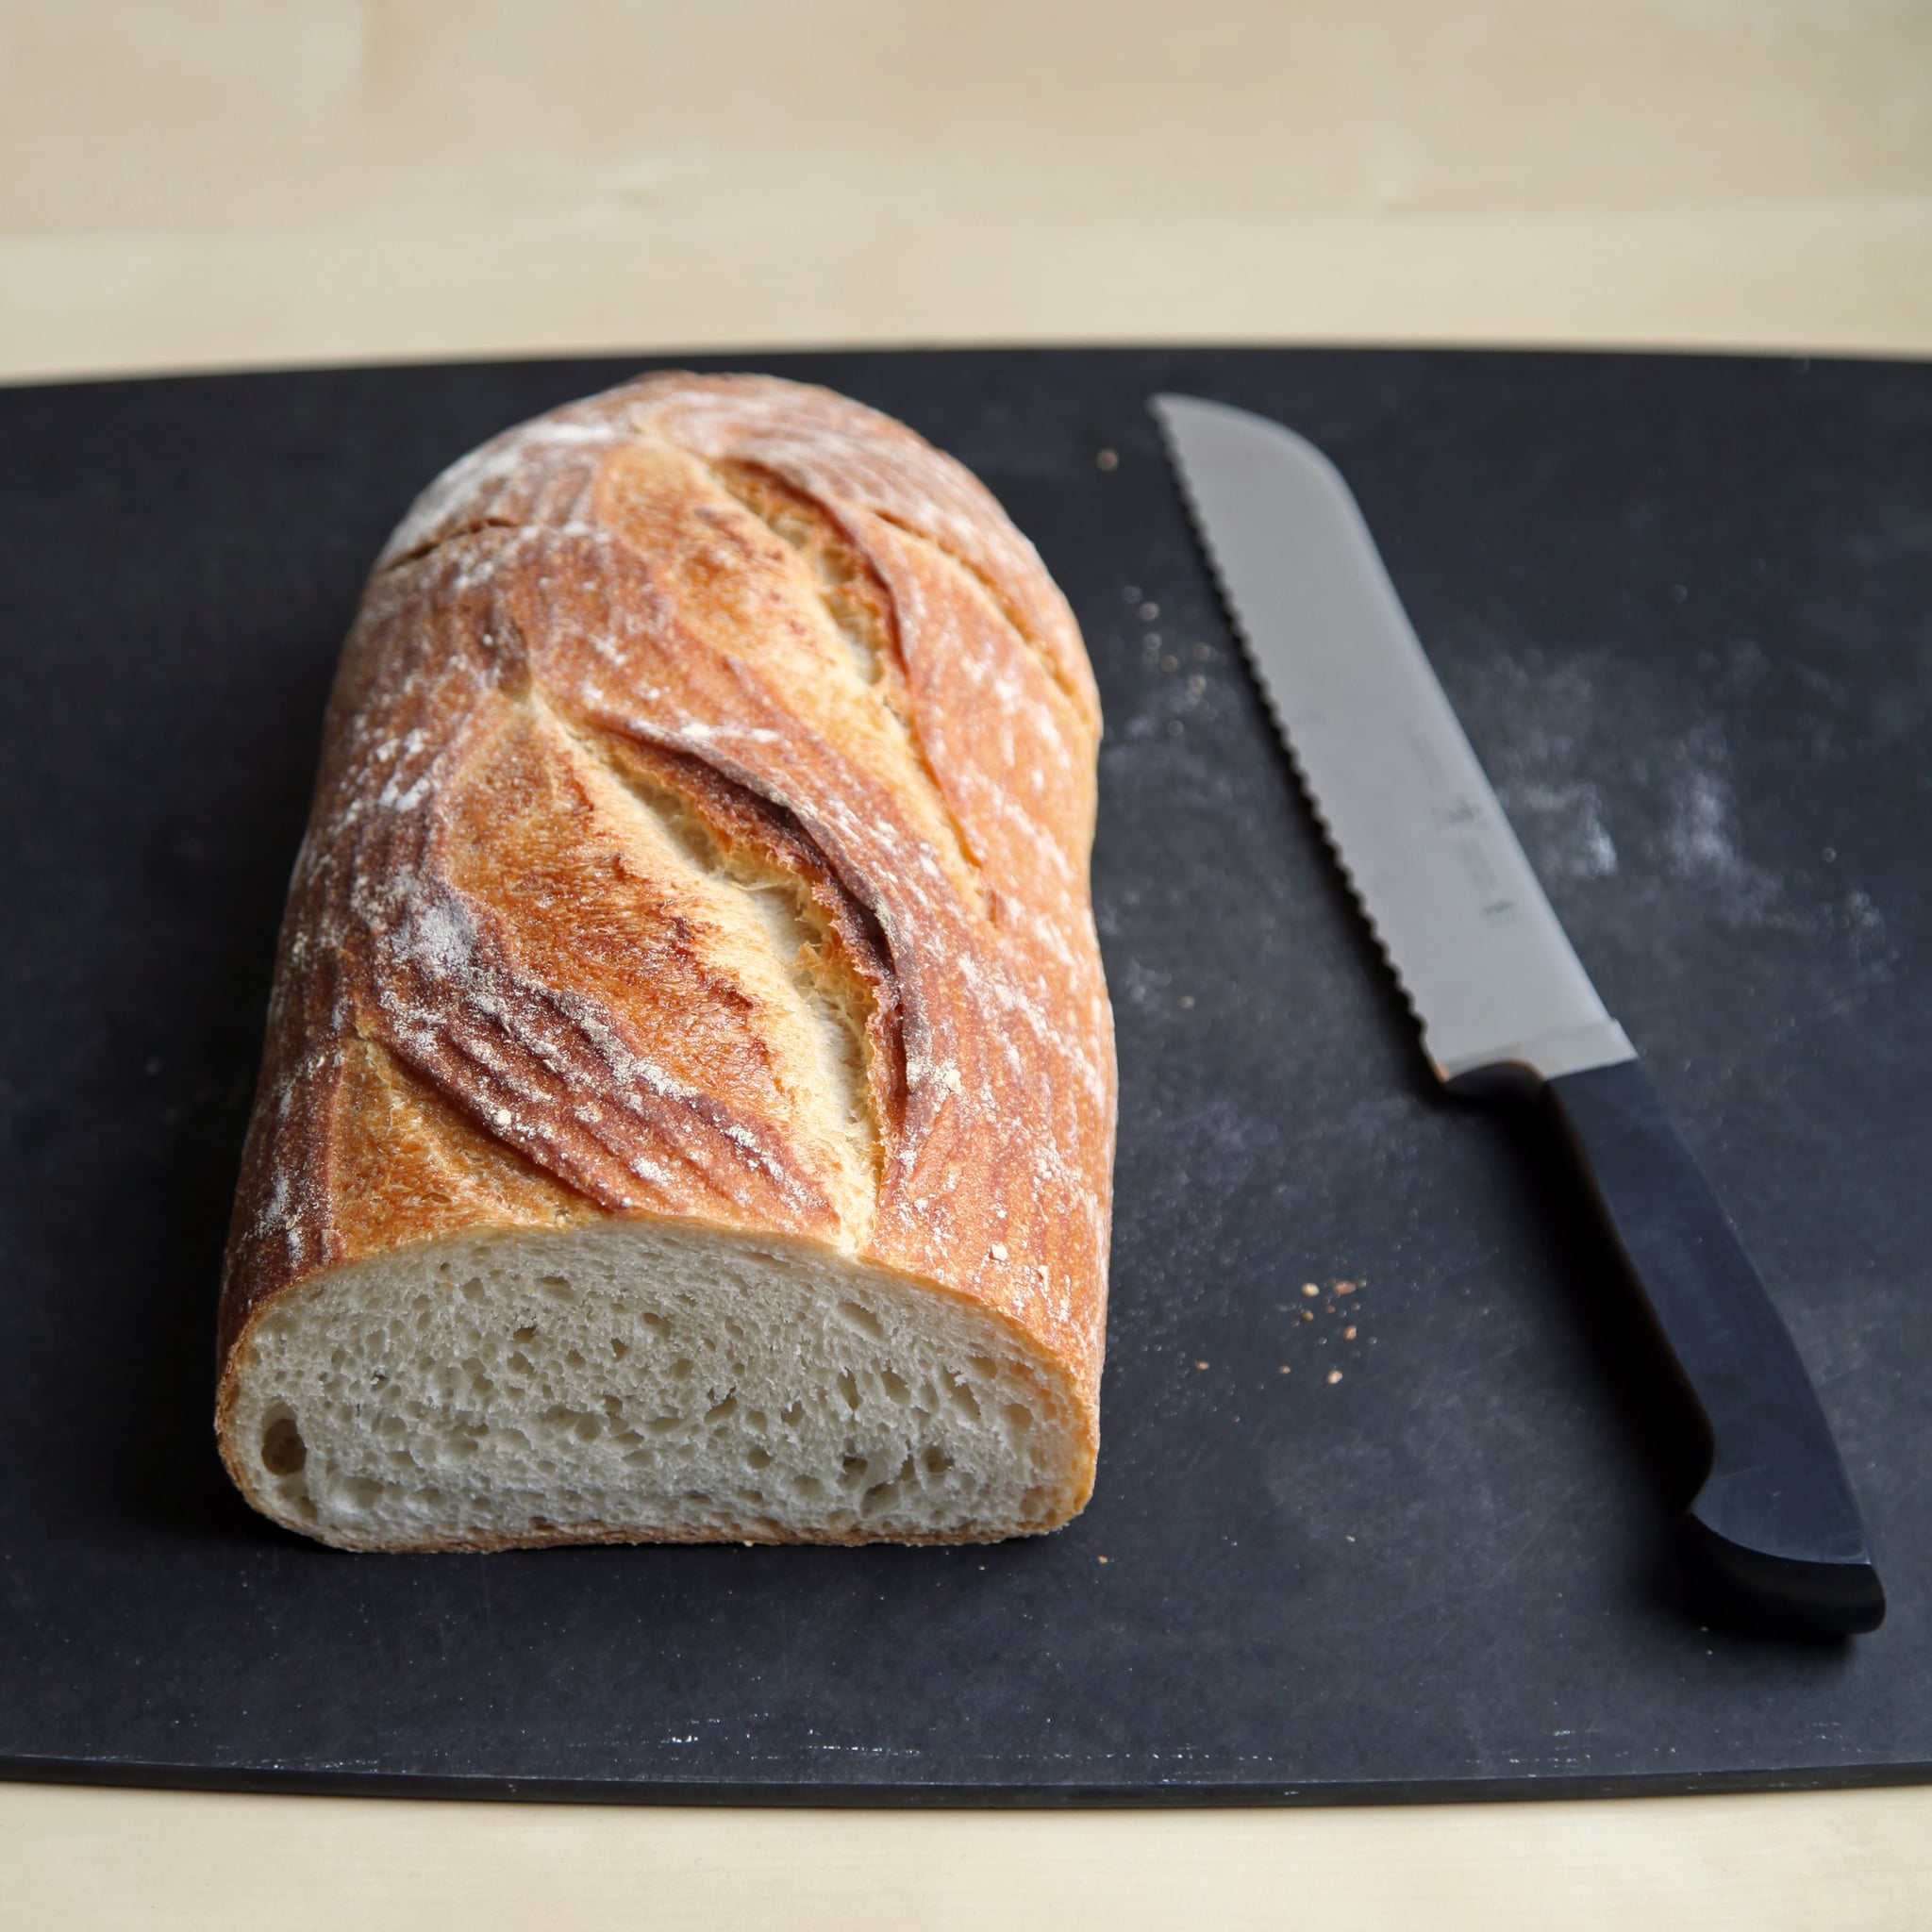 Use Day-Old Bread If Possible